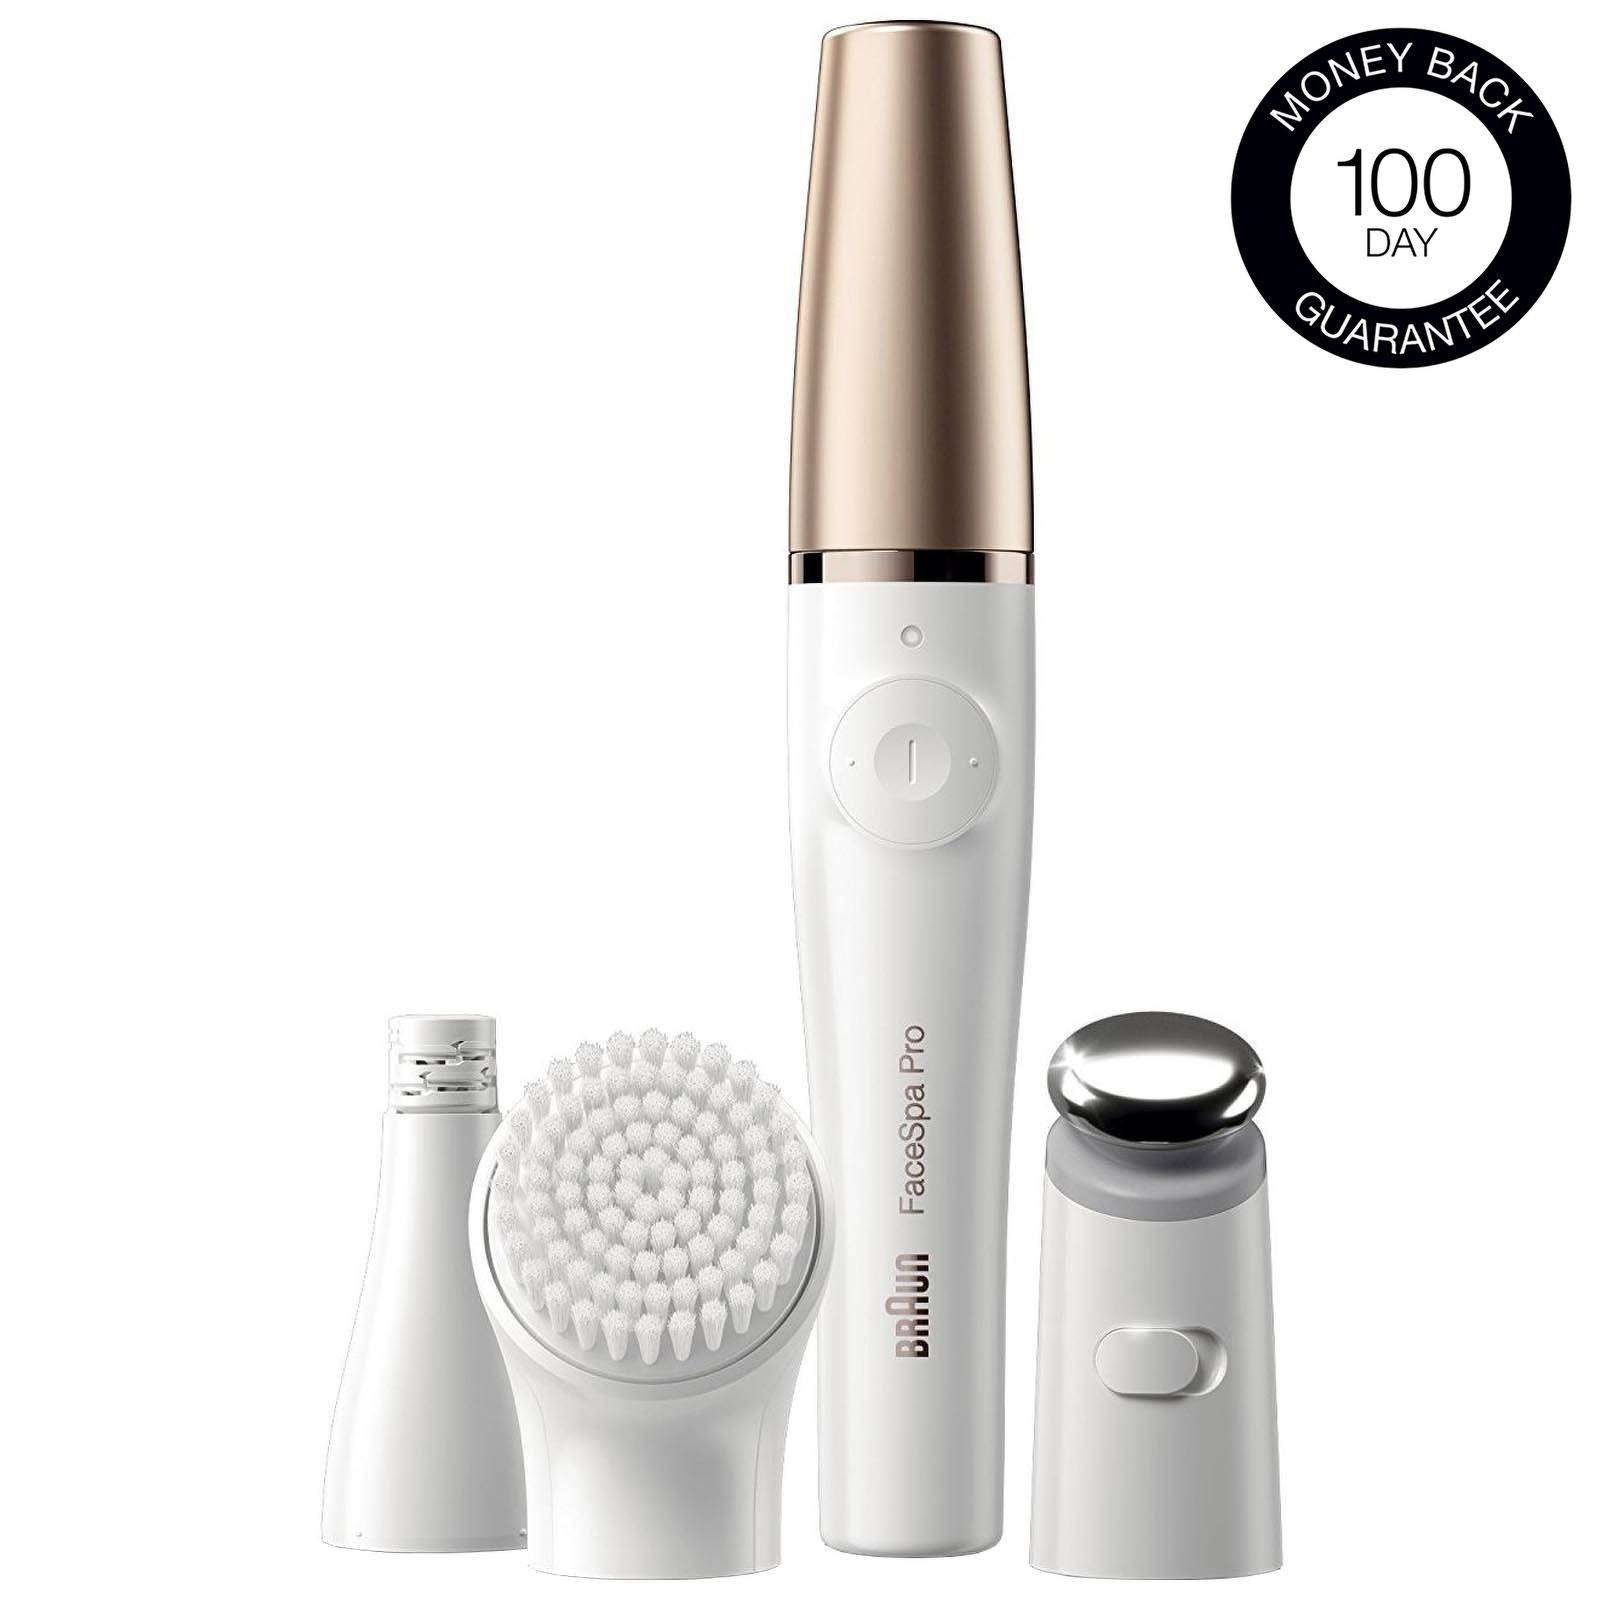 Braun - FaceSpa Pro 911 FaceSpa Pro 3 in 1 Facial, Cleansing and Epilator for Women